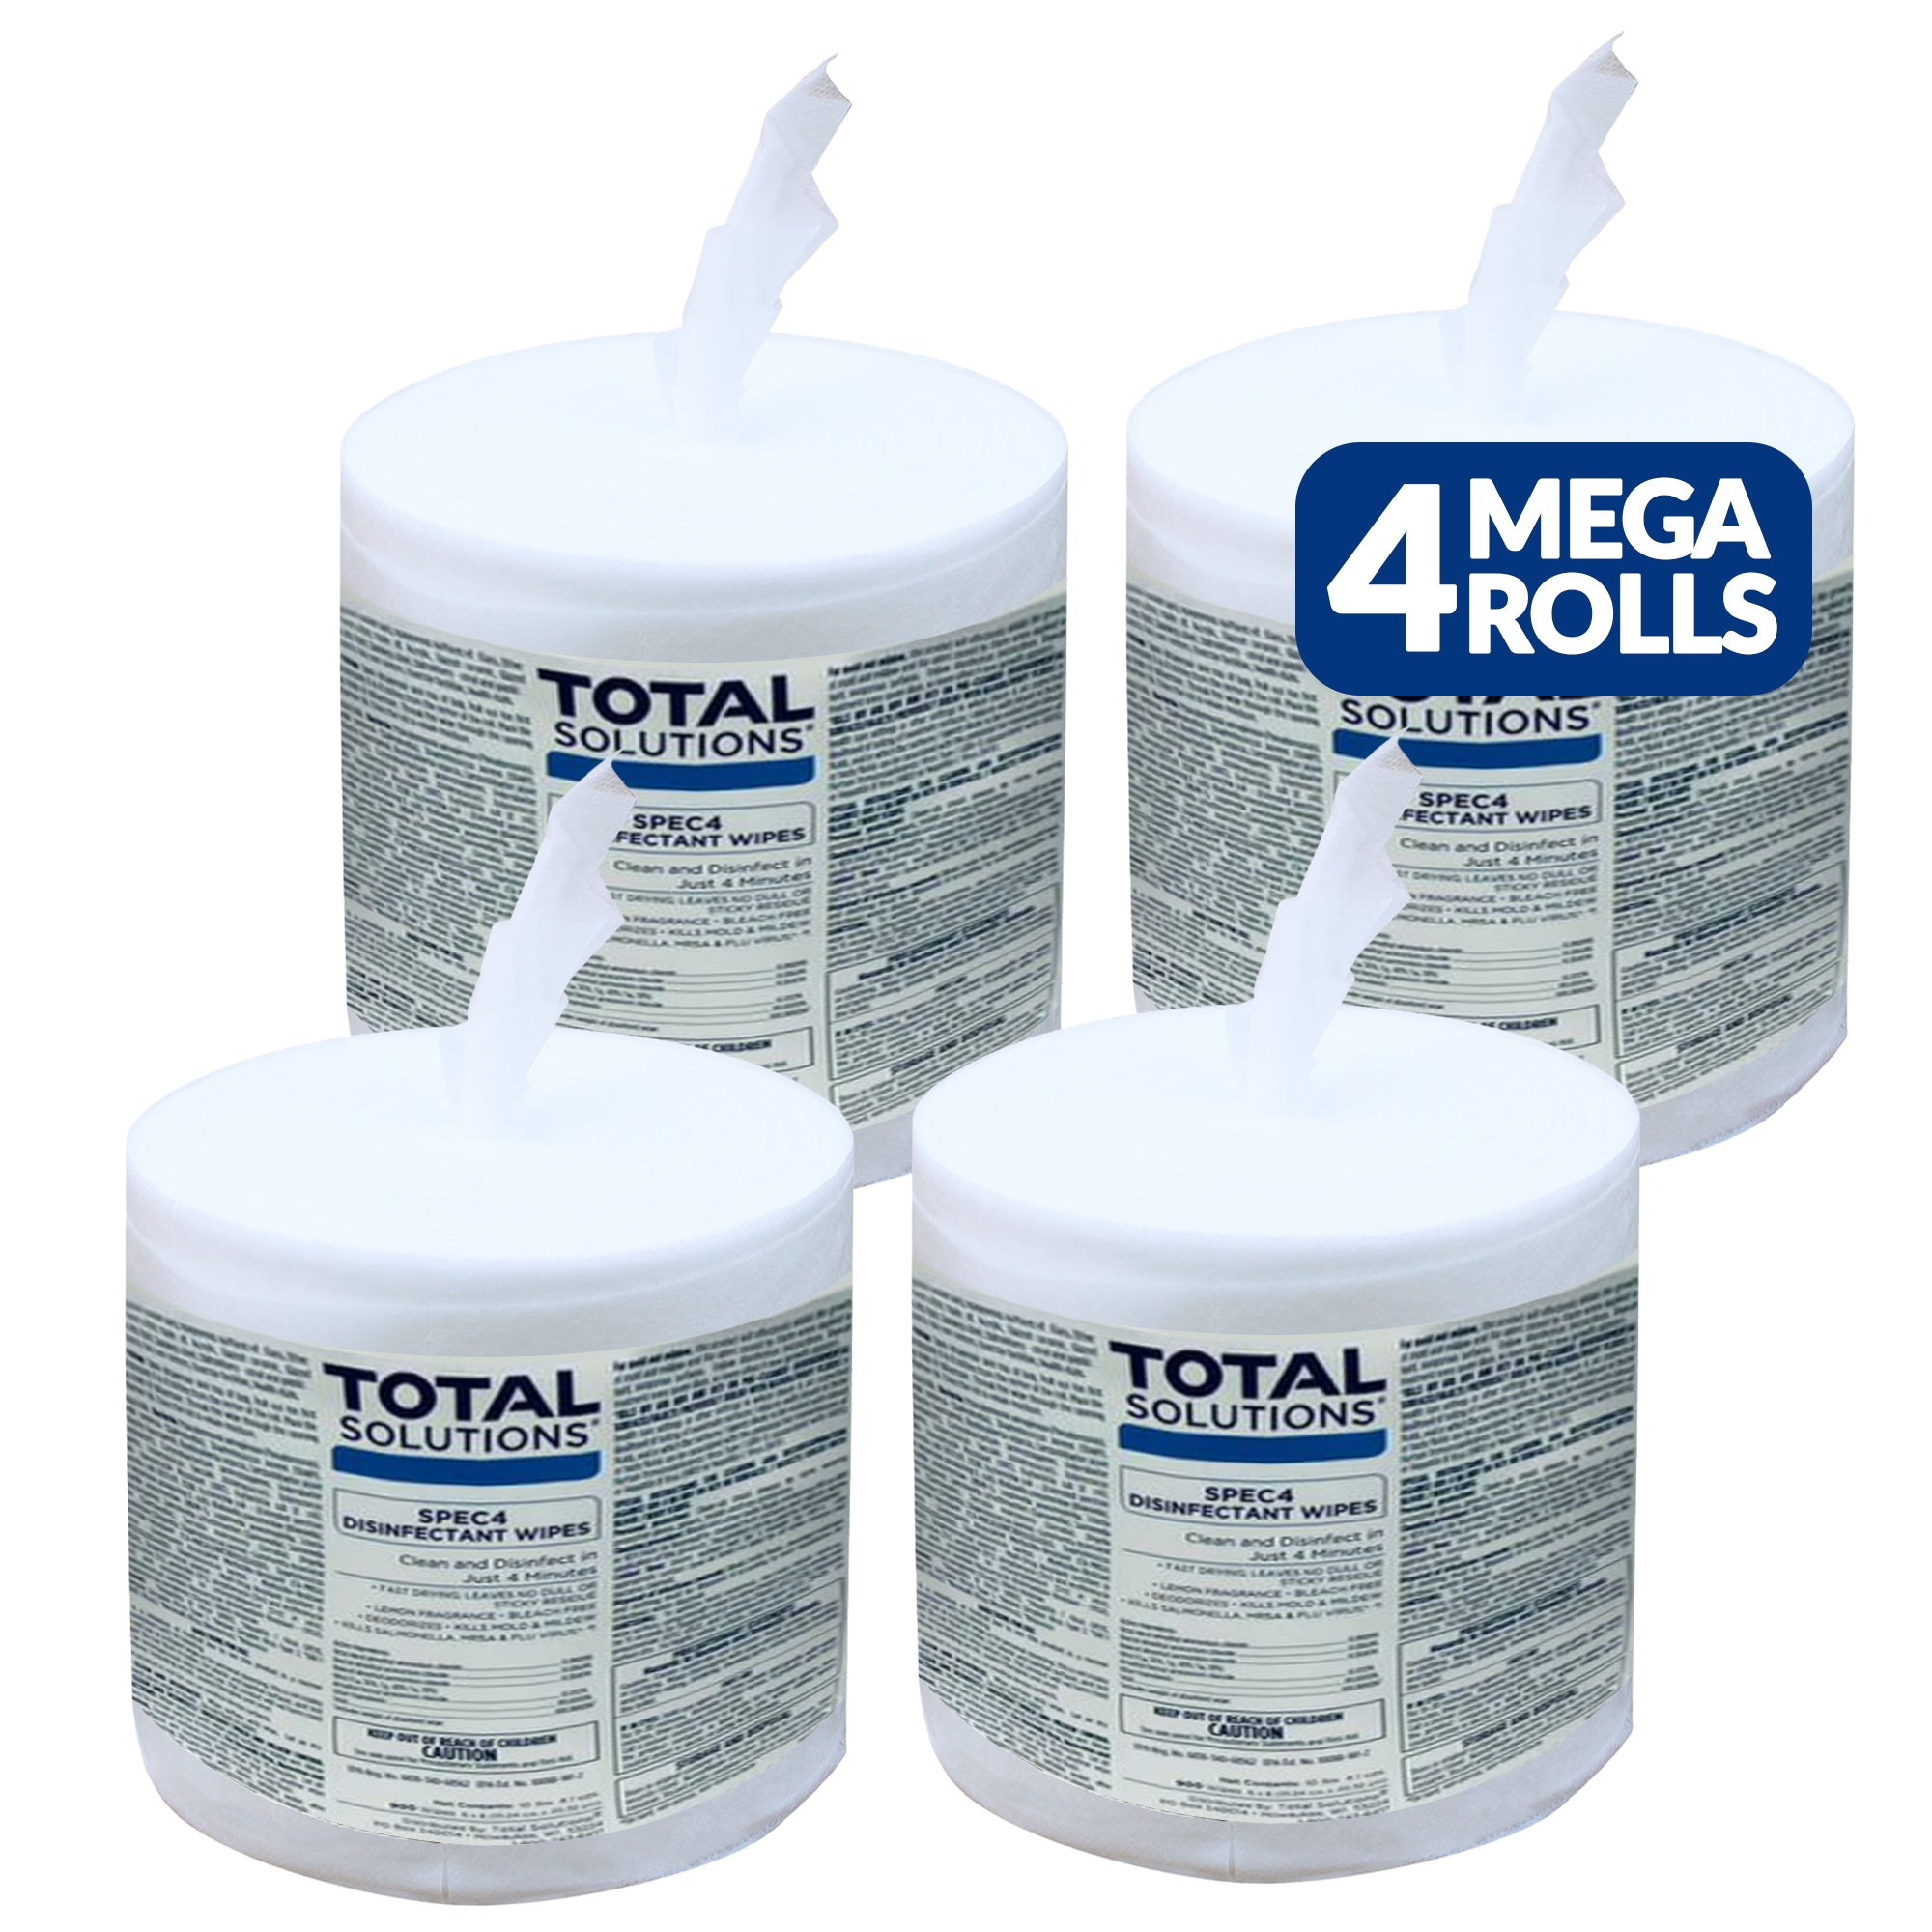 "Total Solutions Hospital Grade Disinfecting Wipes: 3600 Wipes (8"" x 6""): 4 Refill Mega Rolls - EPA Registered"